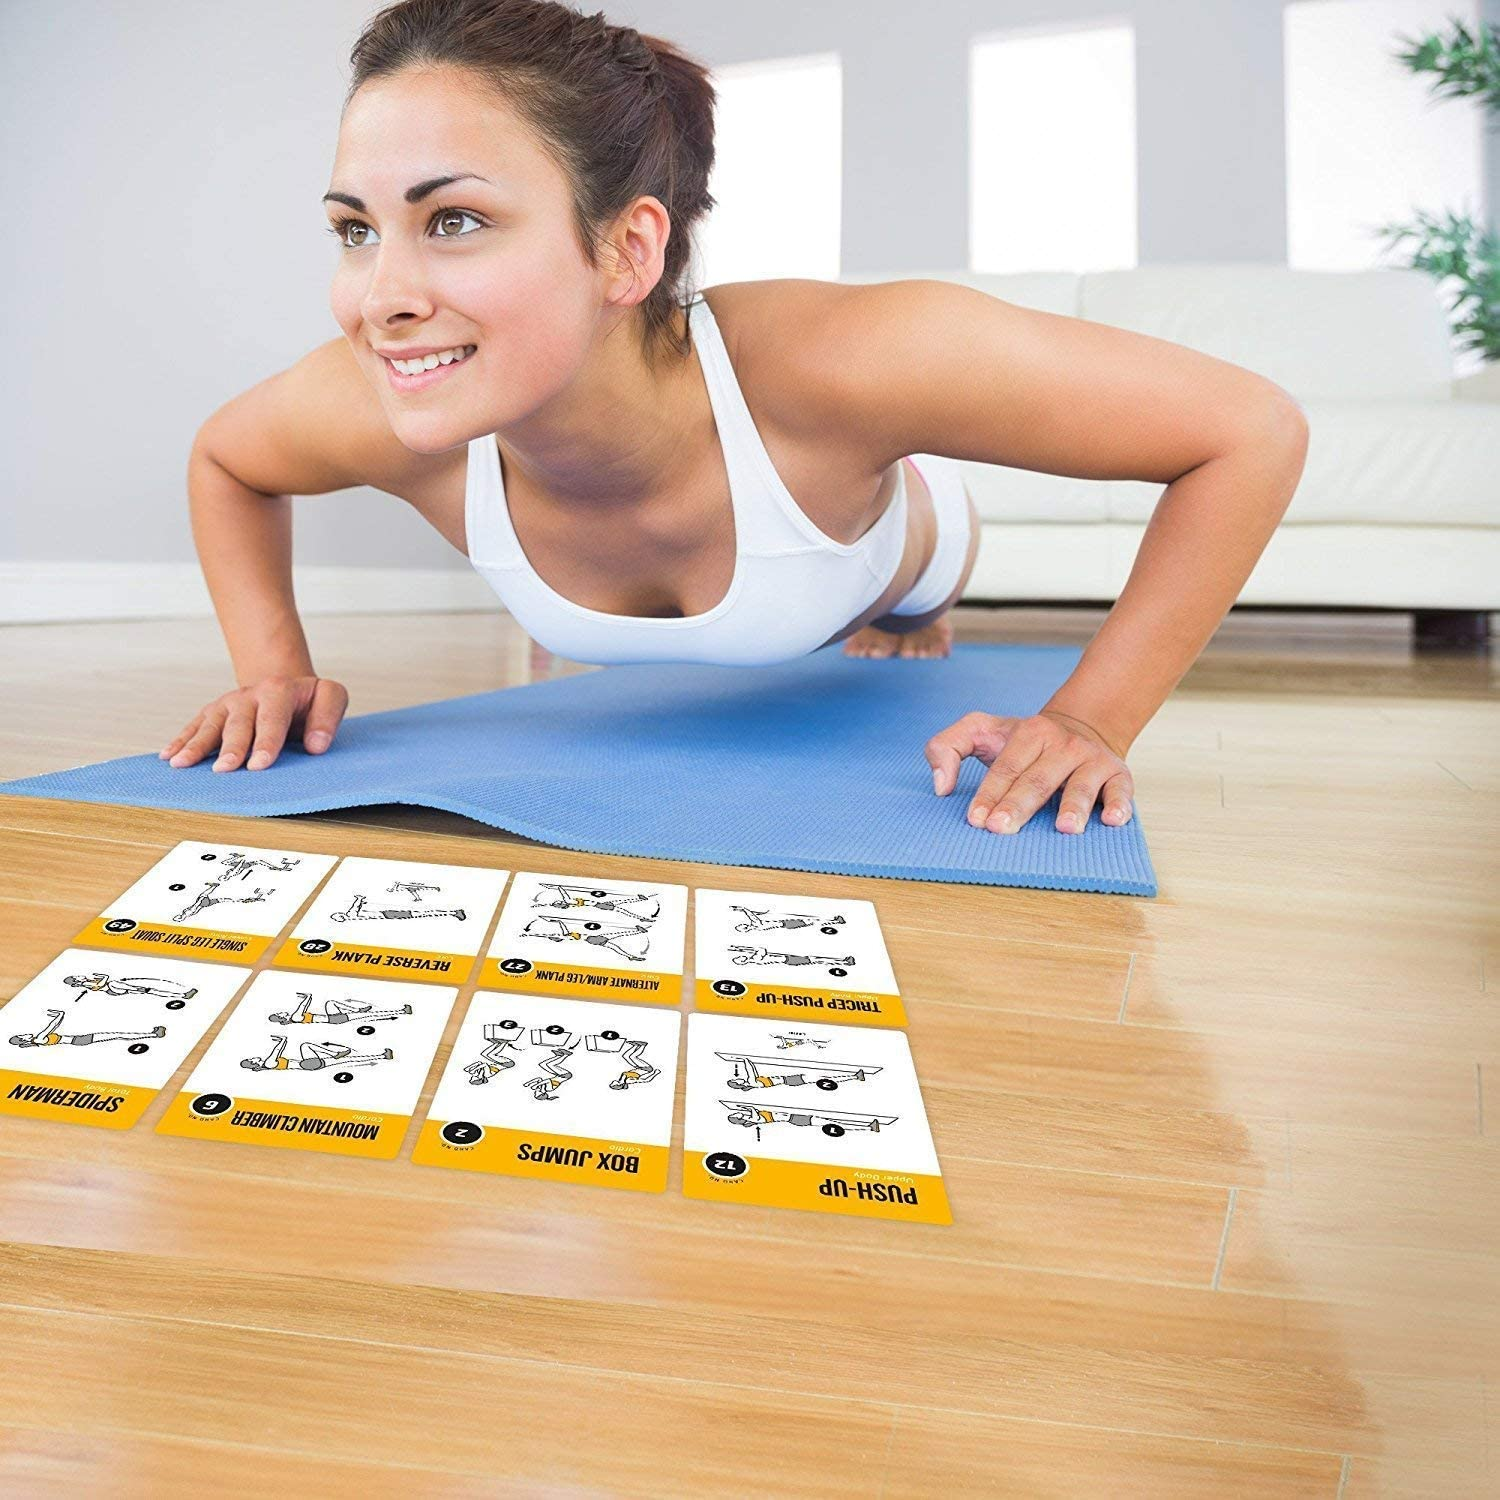 Exercise Cards BODYWEIGHT - Home Gym Workout Personal Trainer Fitness Program